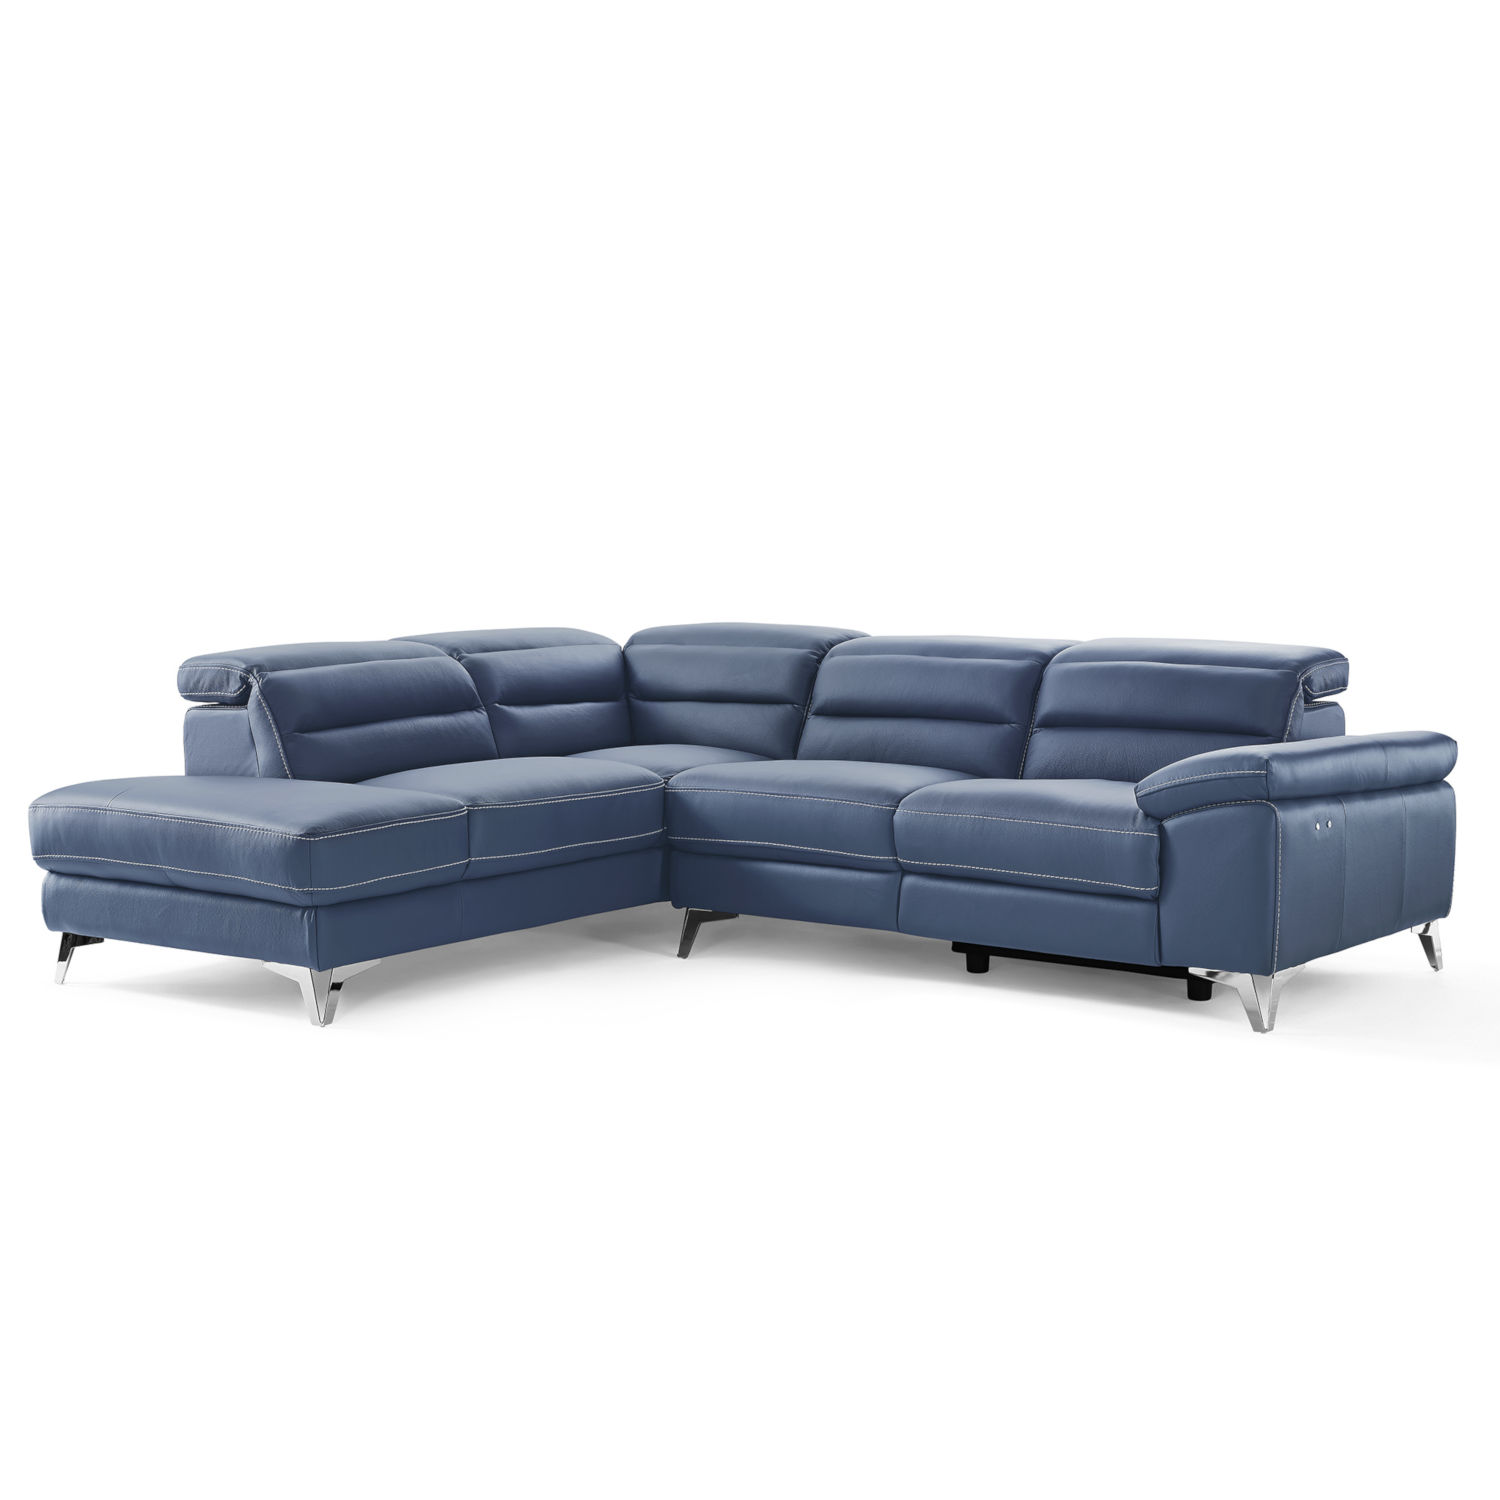 Sofas & Sectionals Category